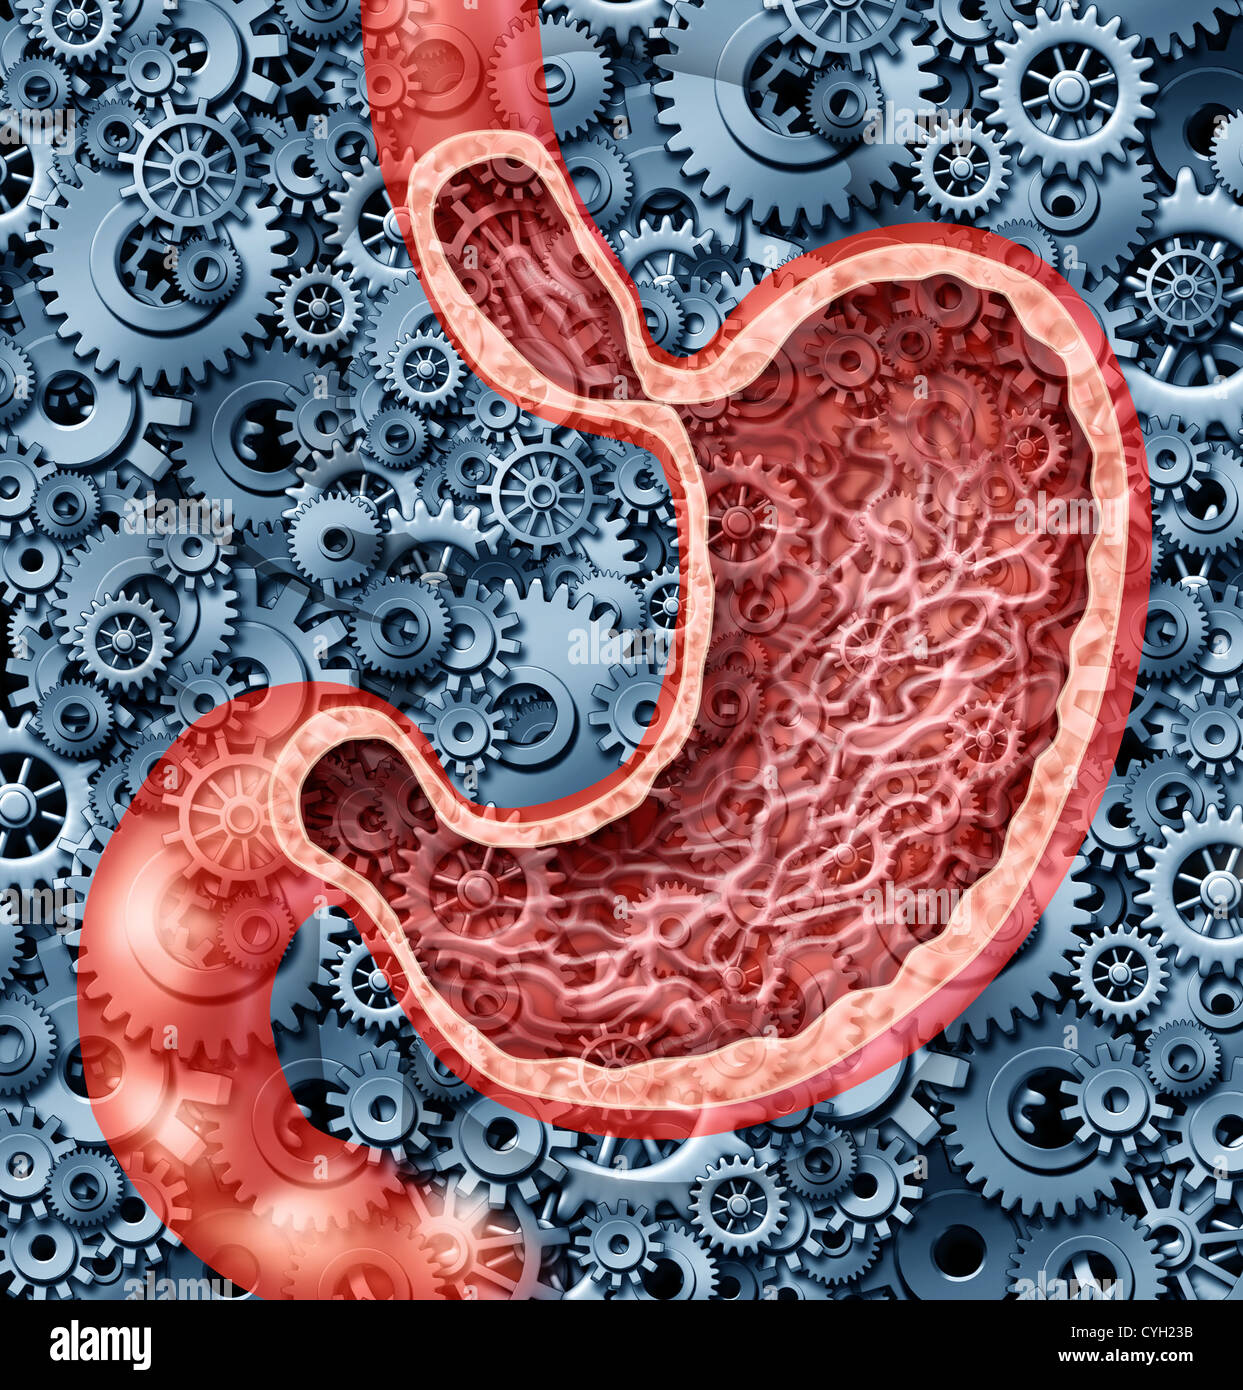 Human digestion function as a stomach anatomy of the human internal ...